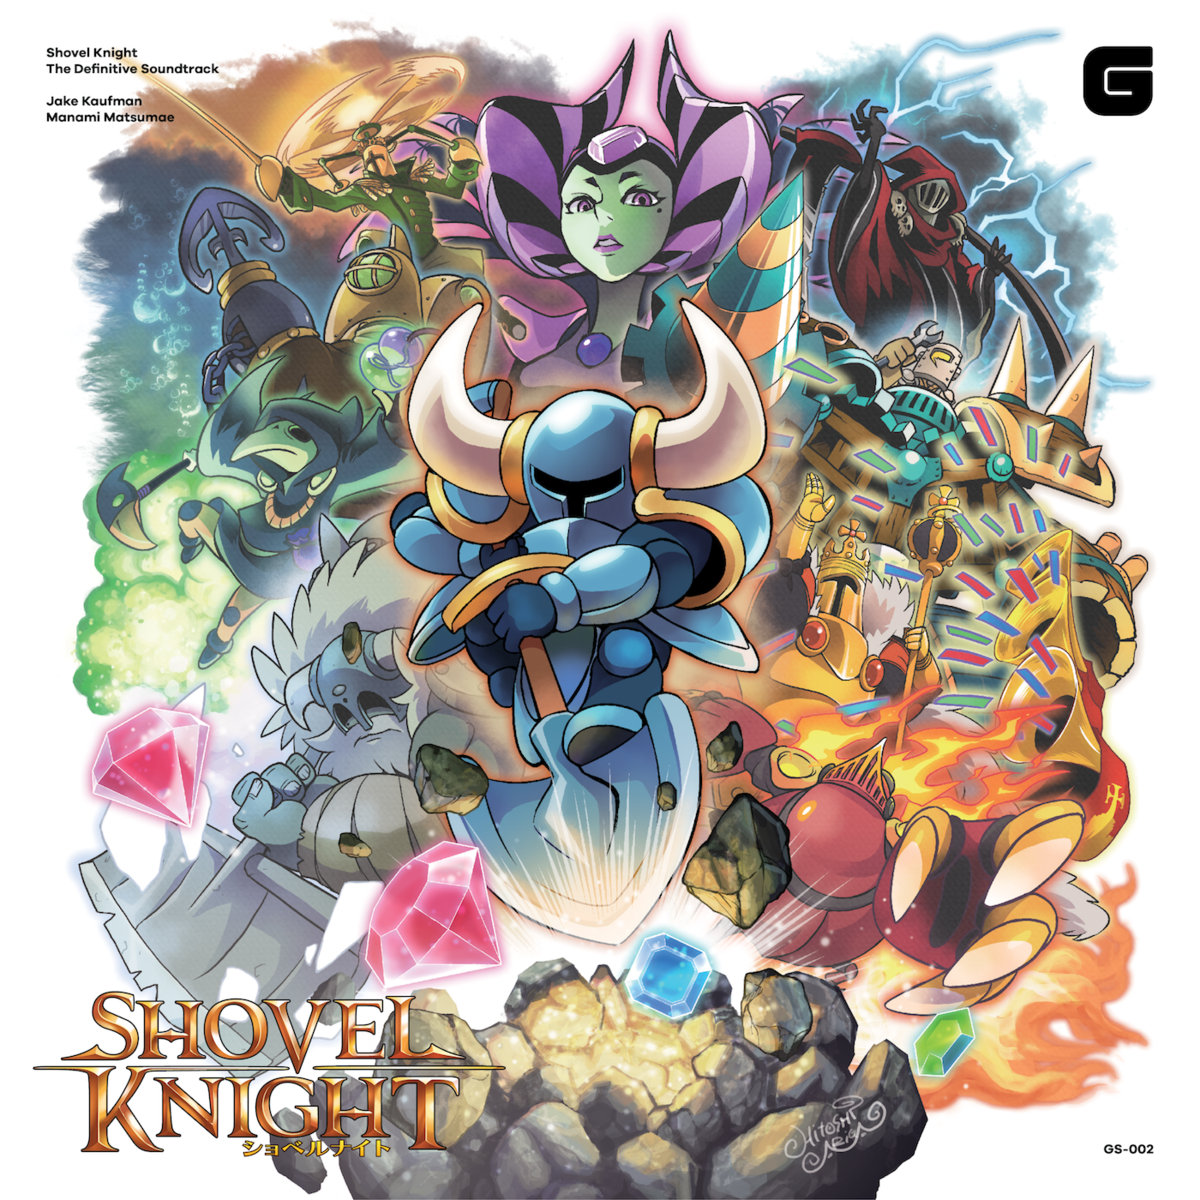 Shovel Knight The Definitive Soundtrack CD: $18 / LP: $35